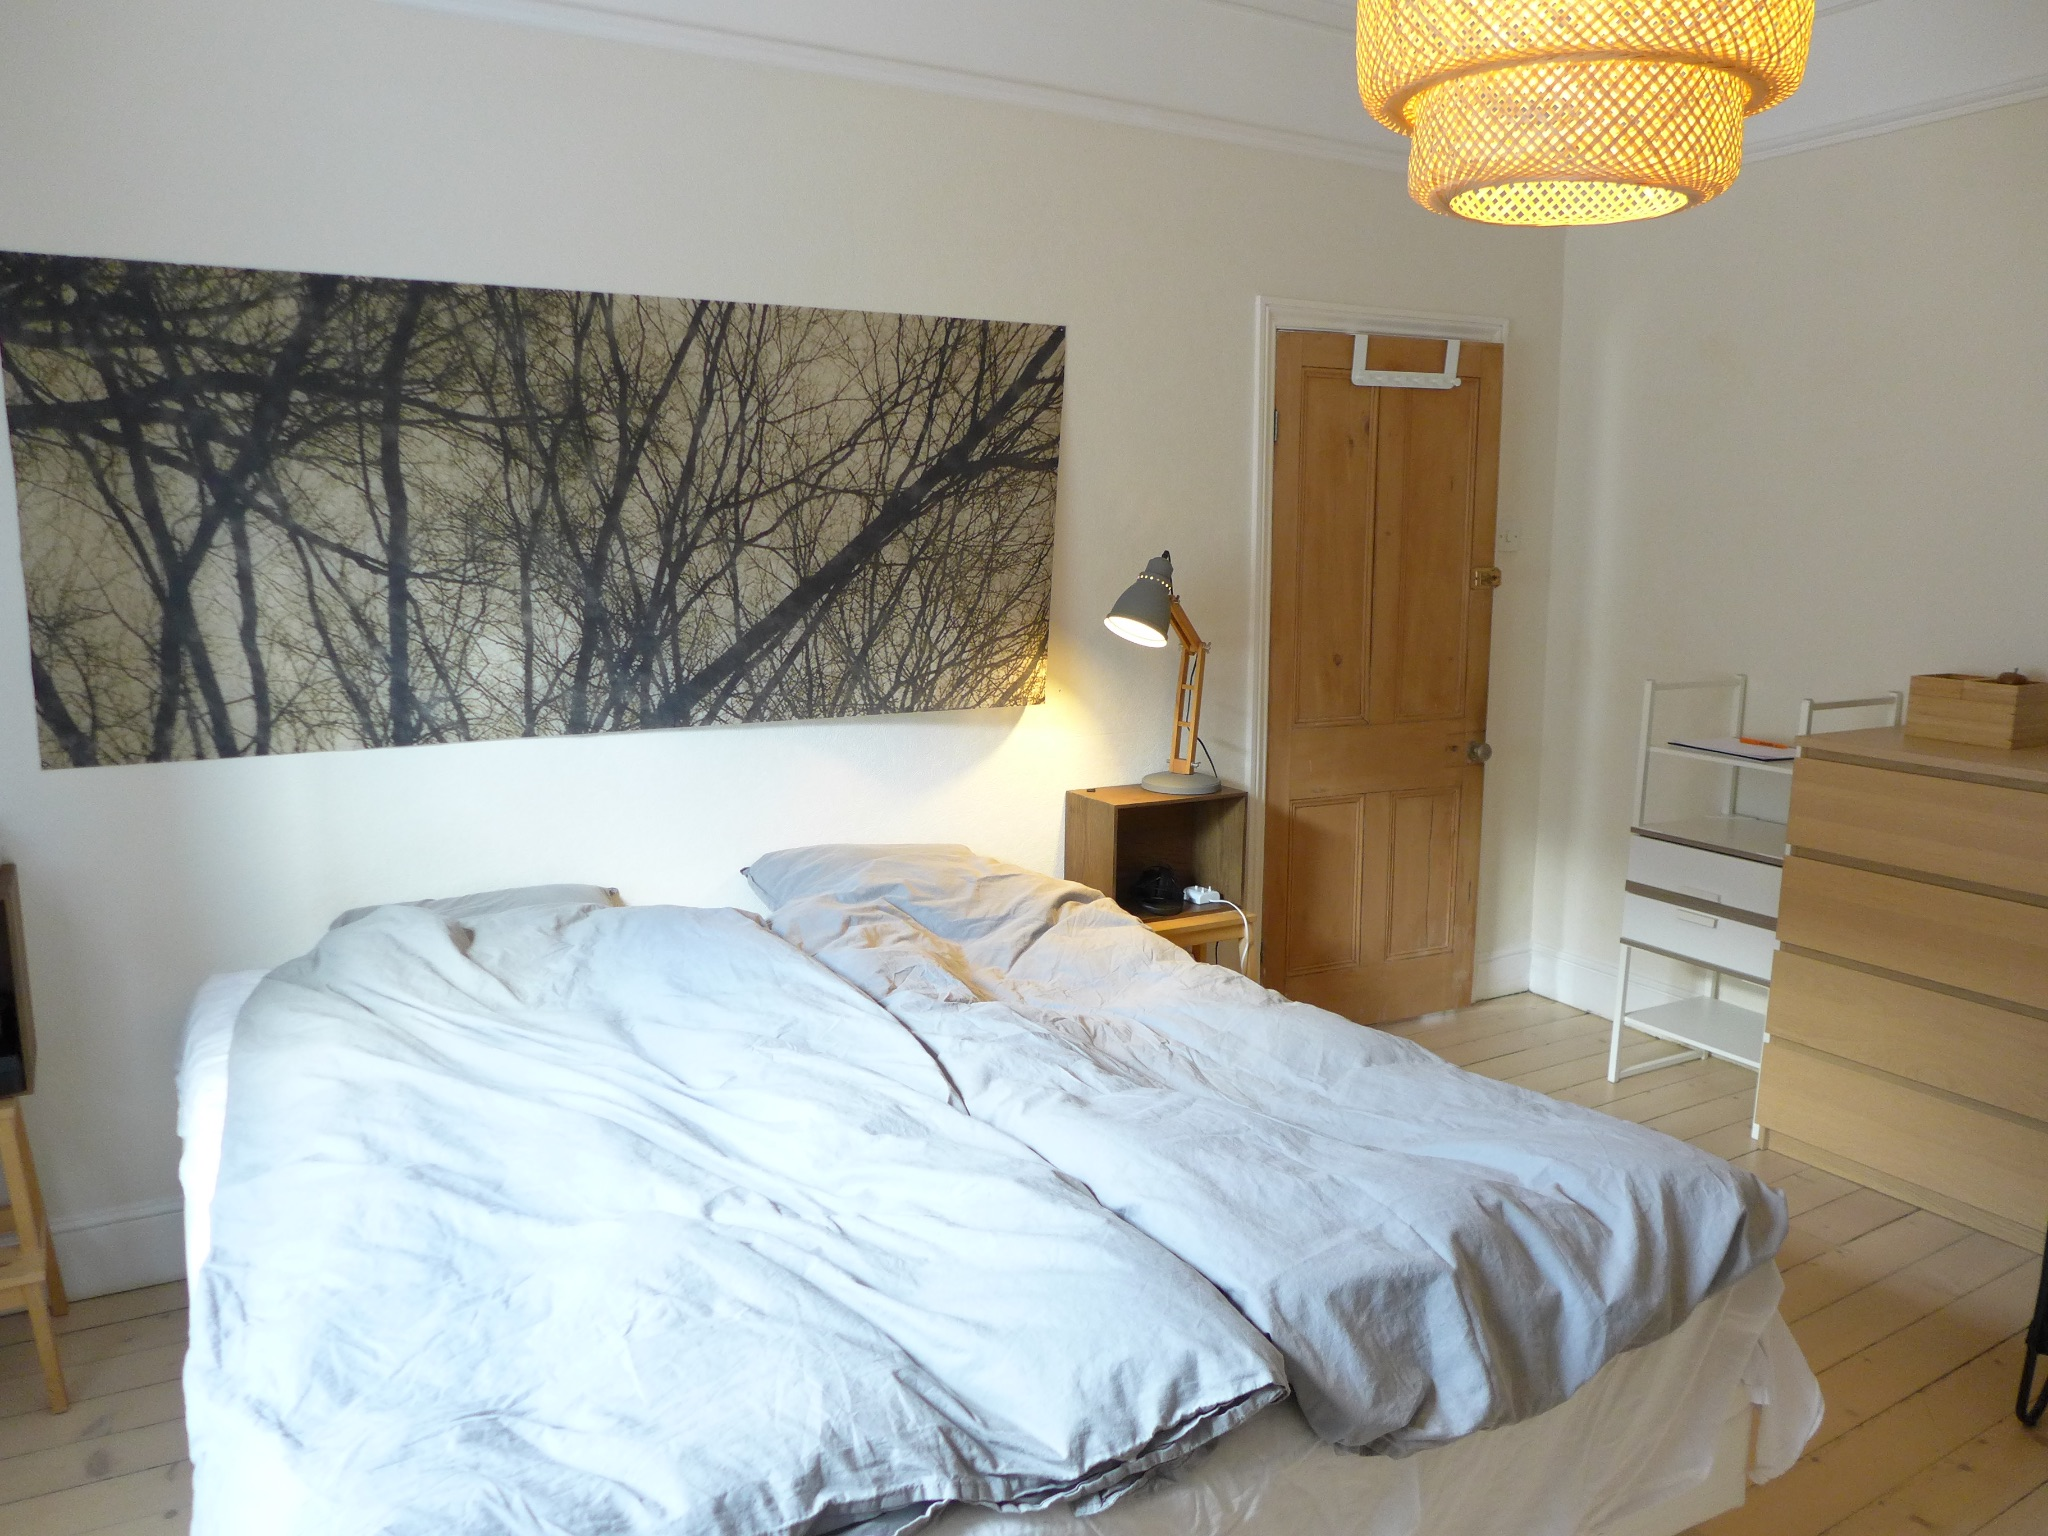 4 bedroom end terraced house For Sale in Calderdale - Photograph 15.